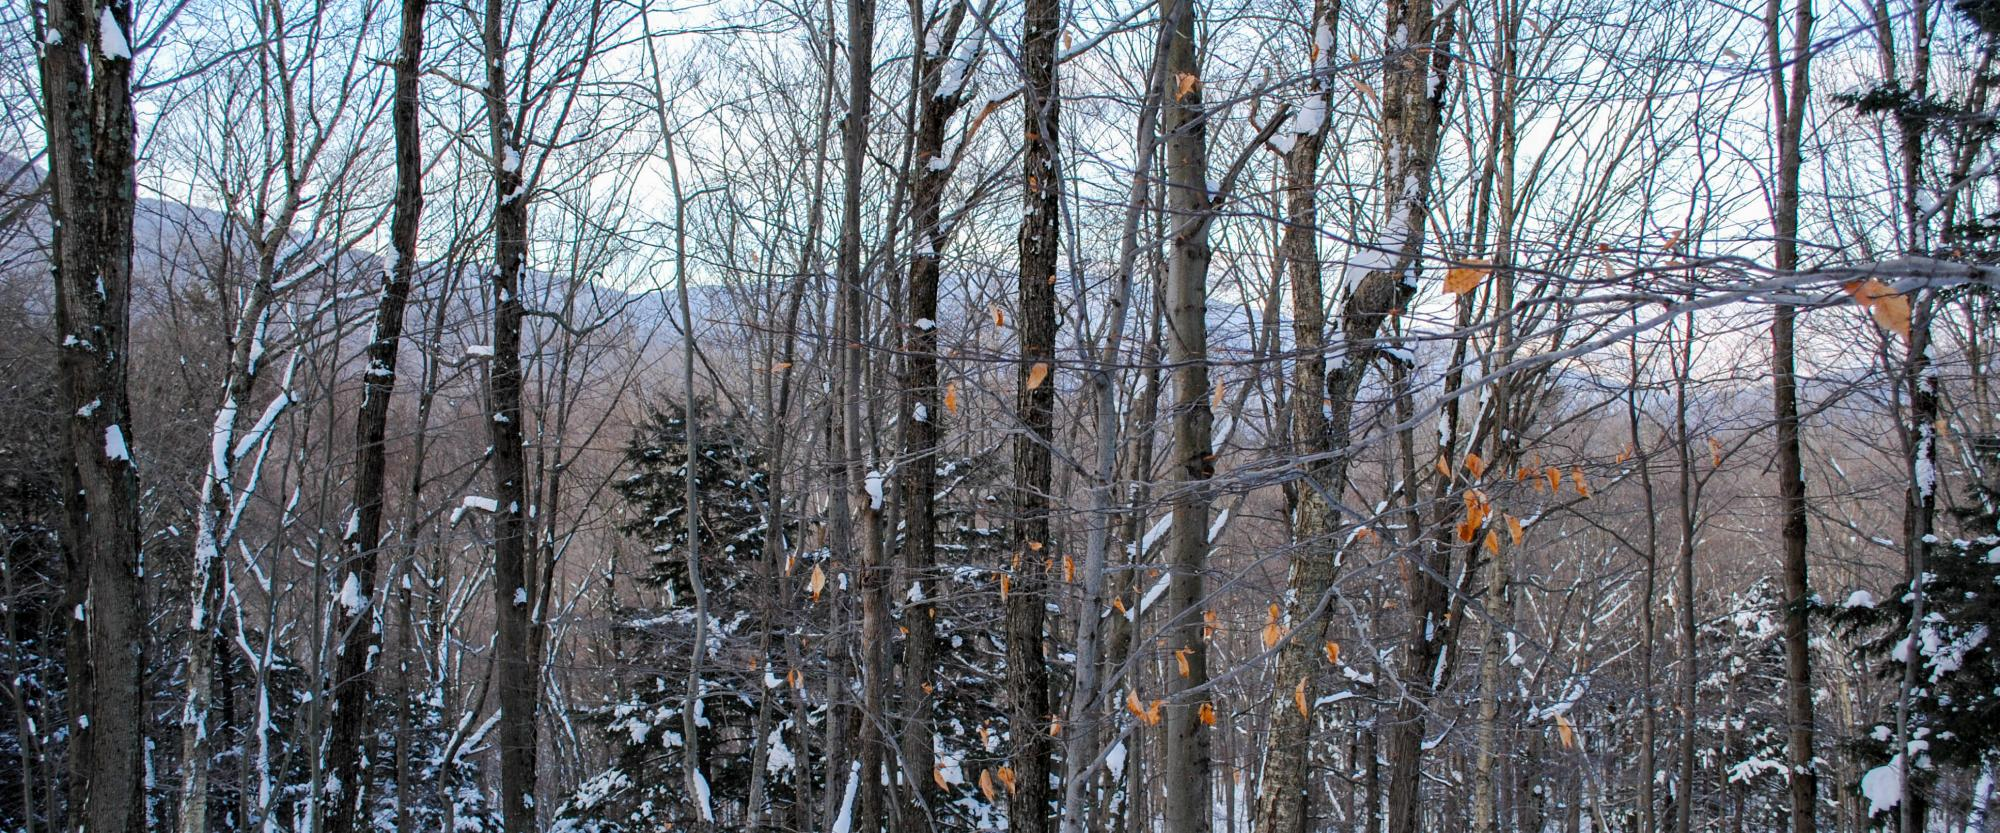 Winter view from the trail to Giant Ledge in the Catskills. Photo by Heather Darley.